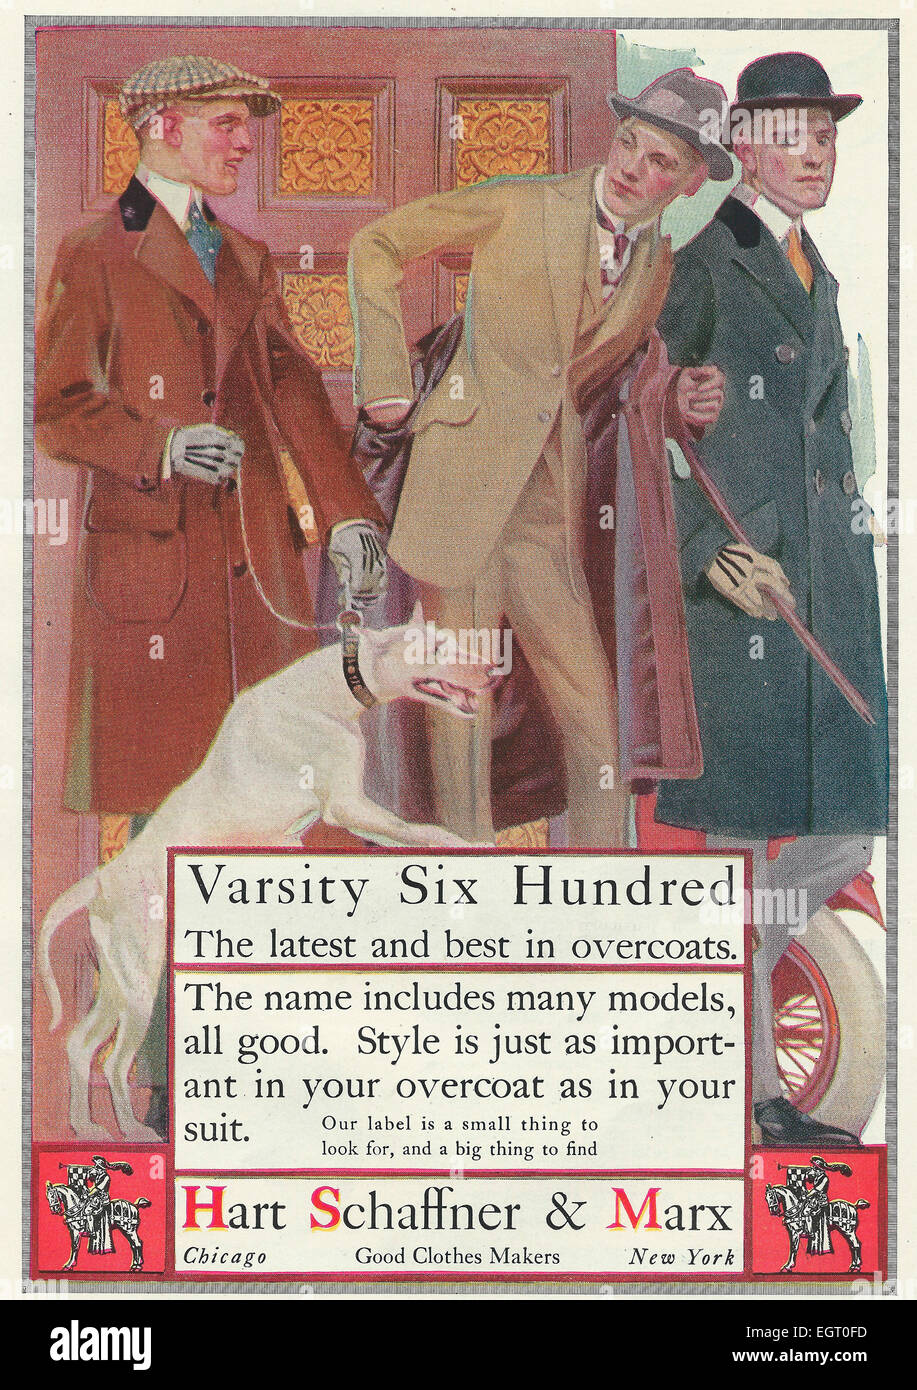 Varsity Six Hundred - The latest and best in overcoats  - Hart Schaffner & Marx - Advertisement 1916 - Stock Image